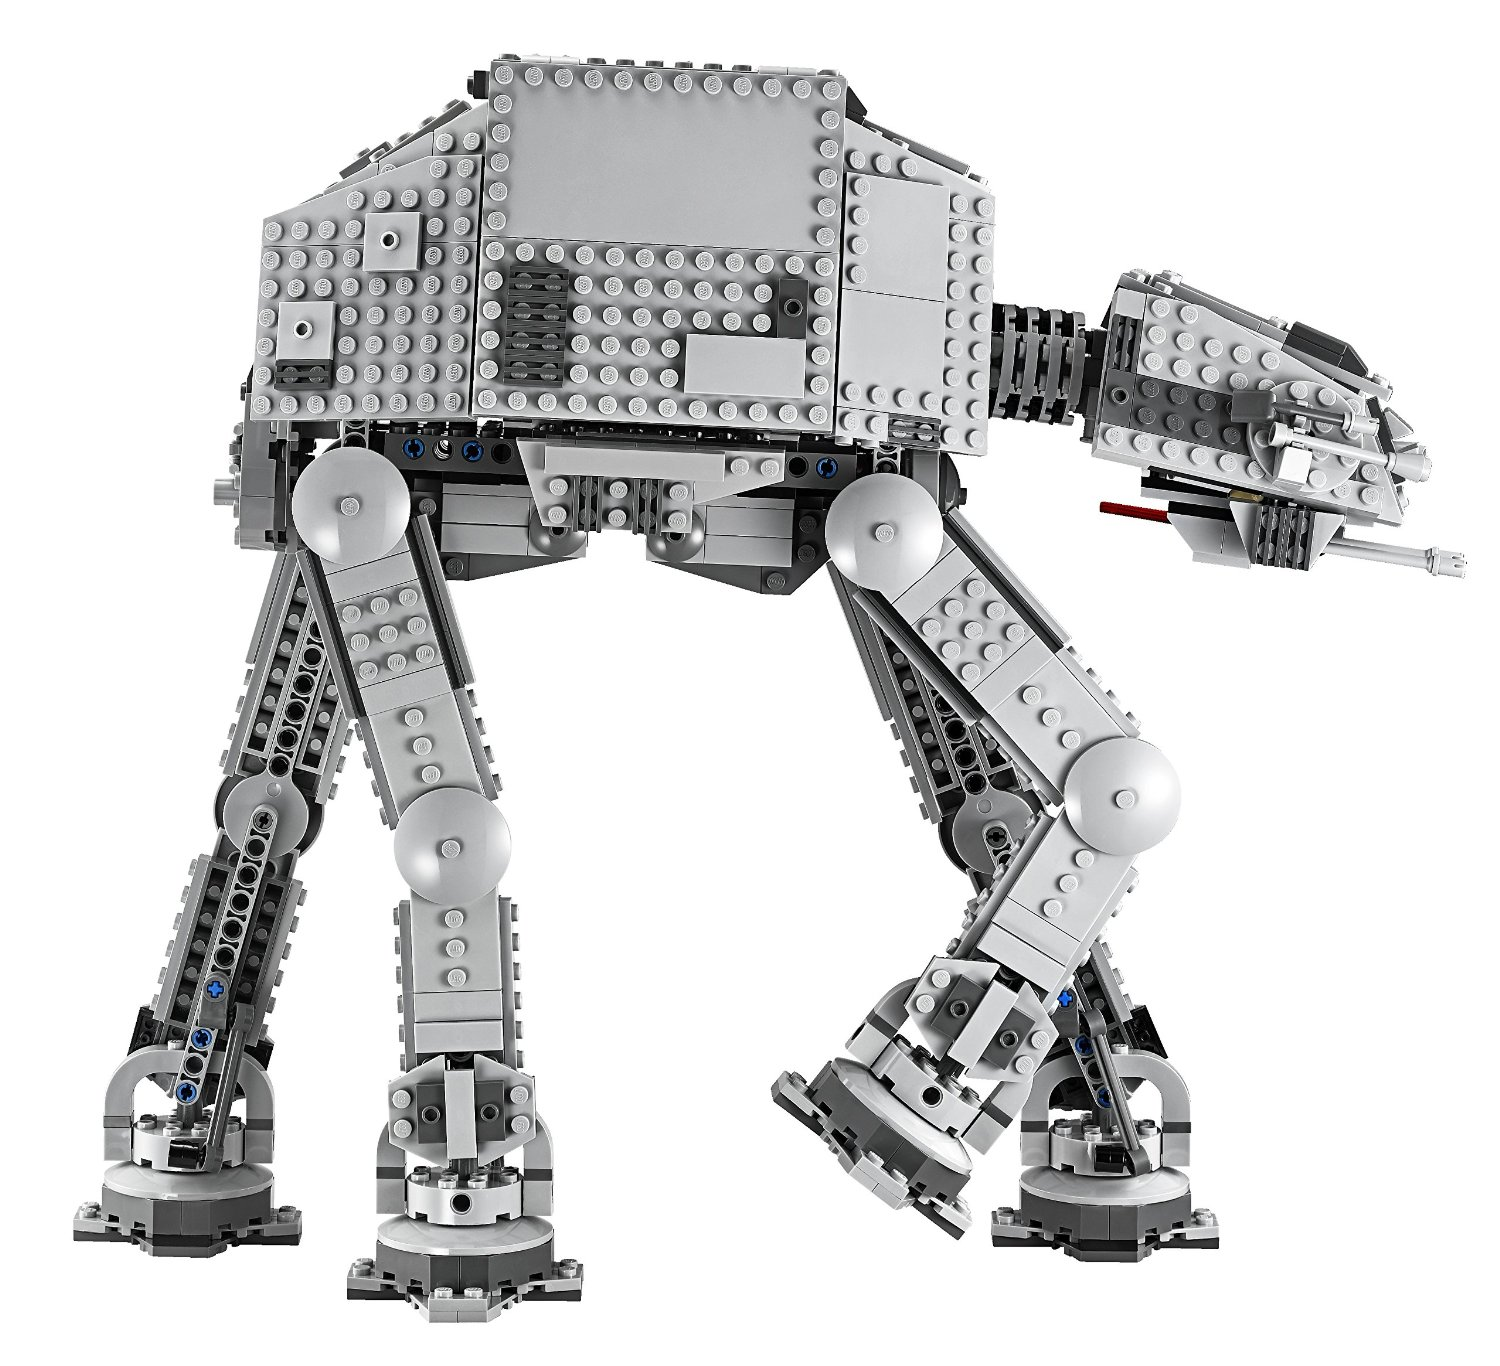 Lego Star Wars Episode V The Empire Strikes Back Battle Of Hoth At